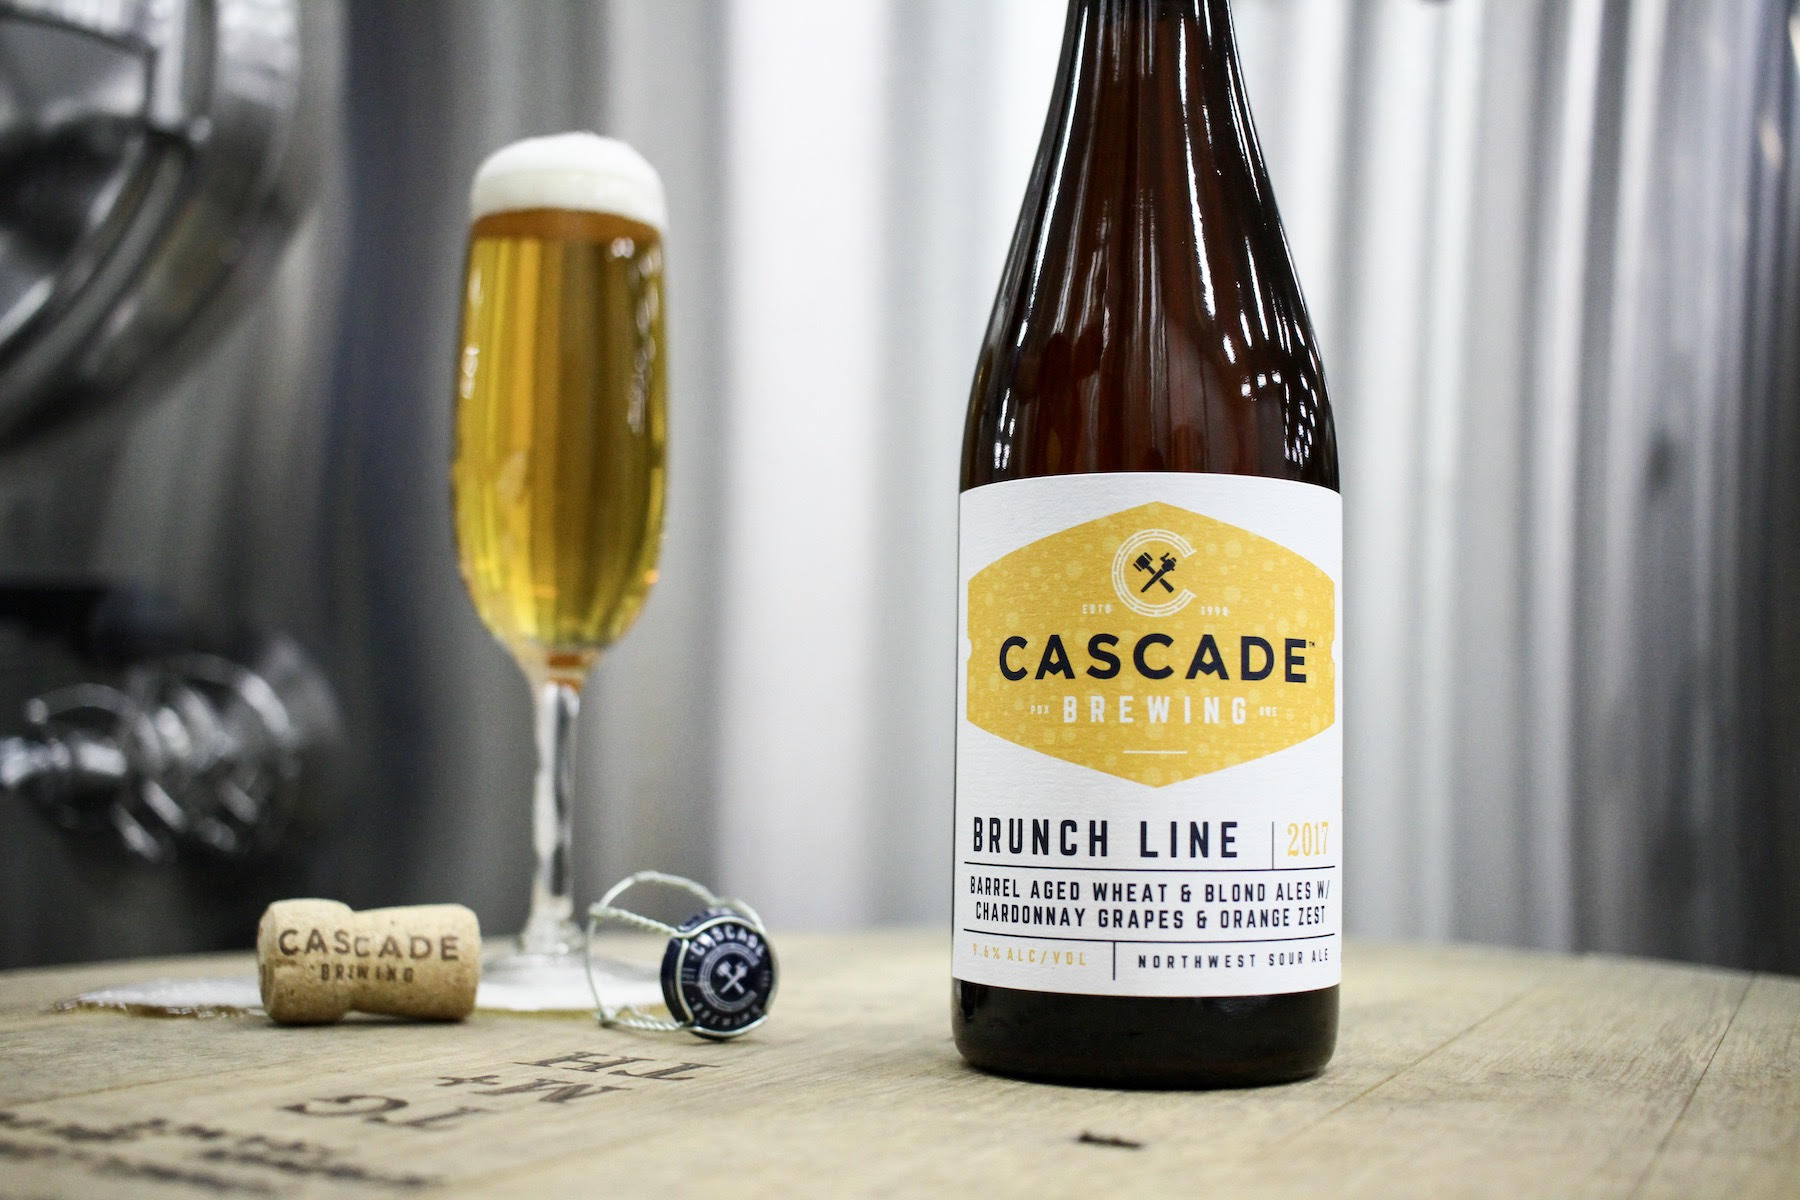 image of Brunch Line courtesy of Cascade Brewing